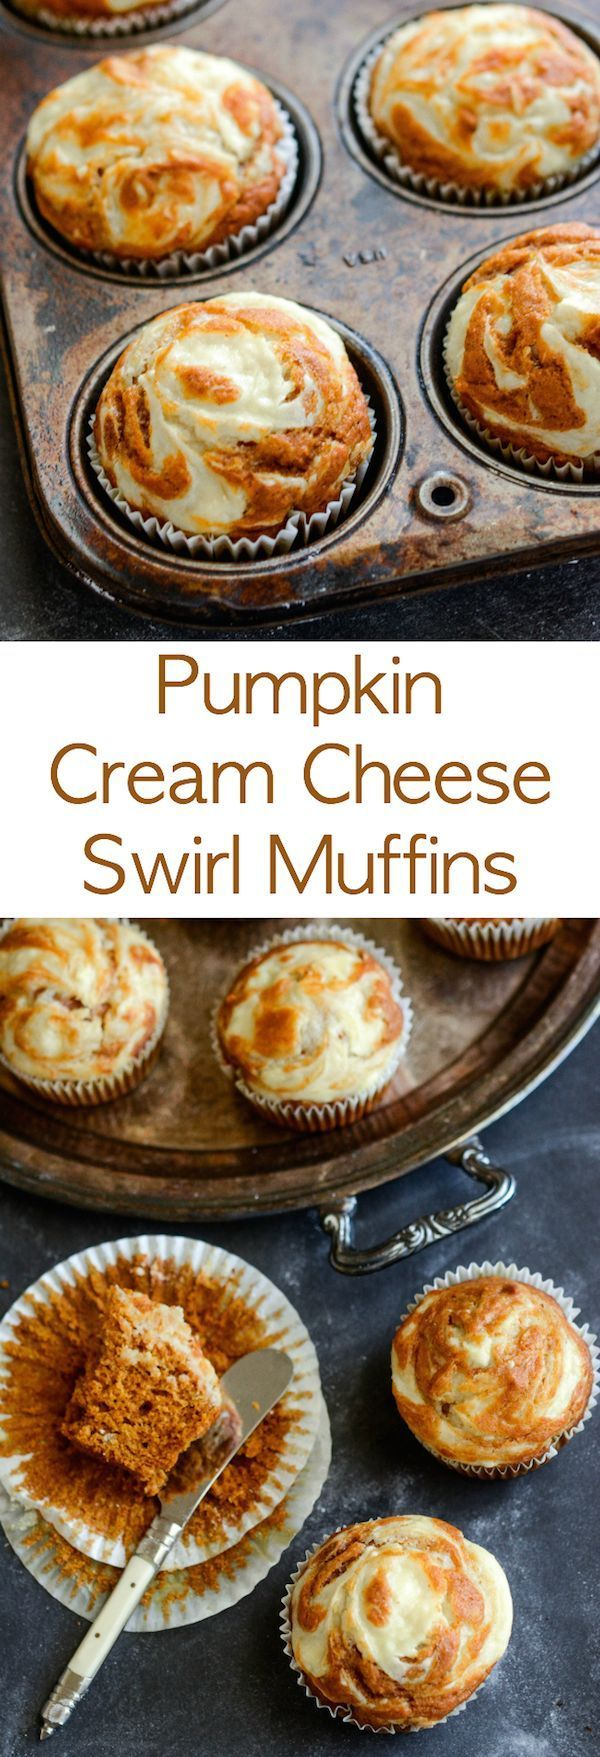 These Pumpkin Cream Cheese Swirl Muffins By Atthenovicechef Are The Stuff Pumpkin Breakfast Dreams Are